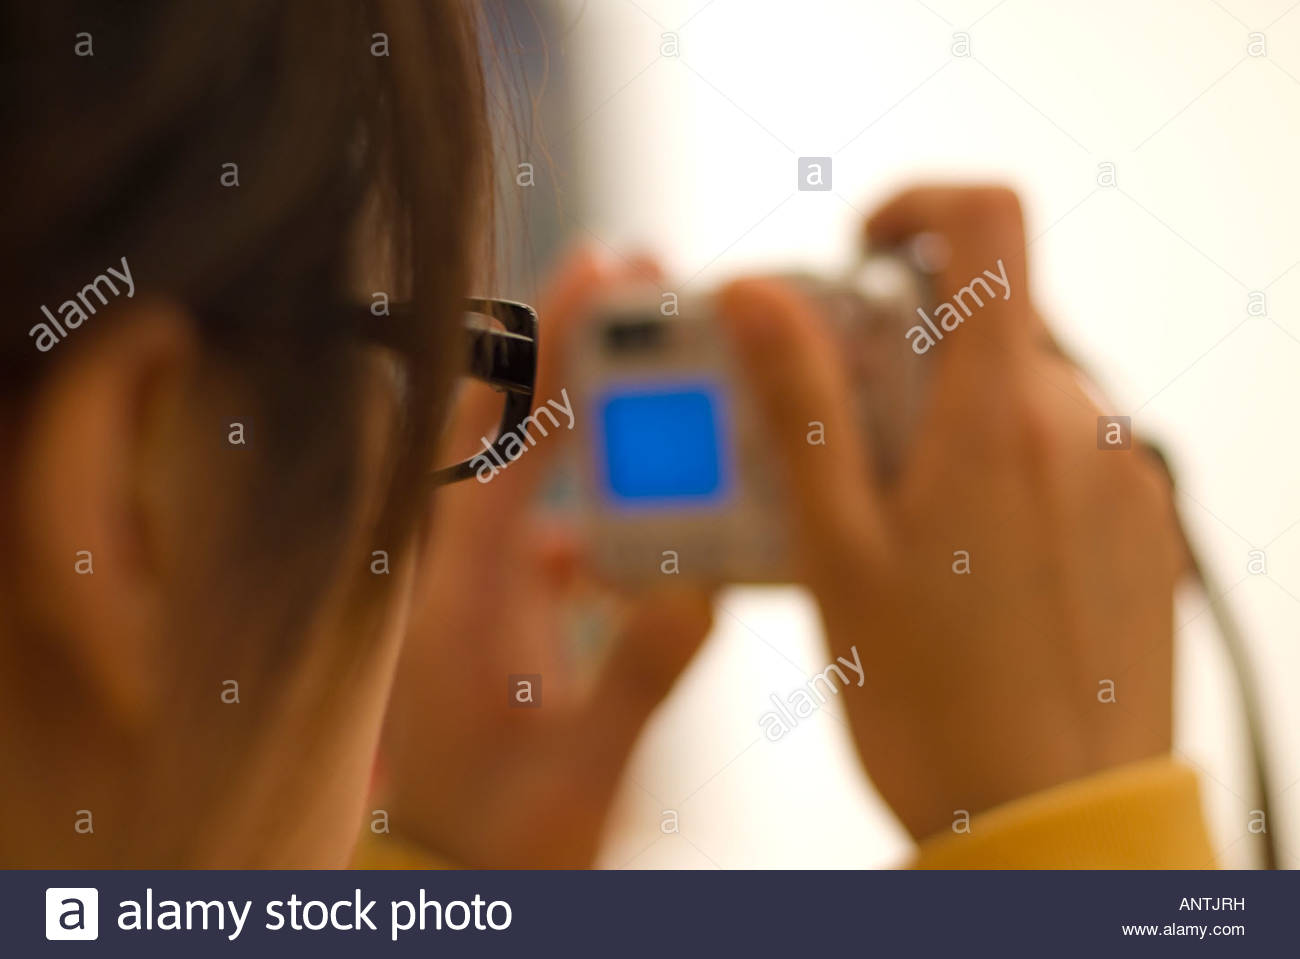 A young lady taking a digital picture - Stock Image